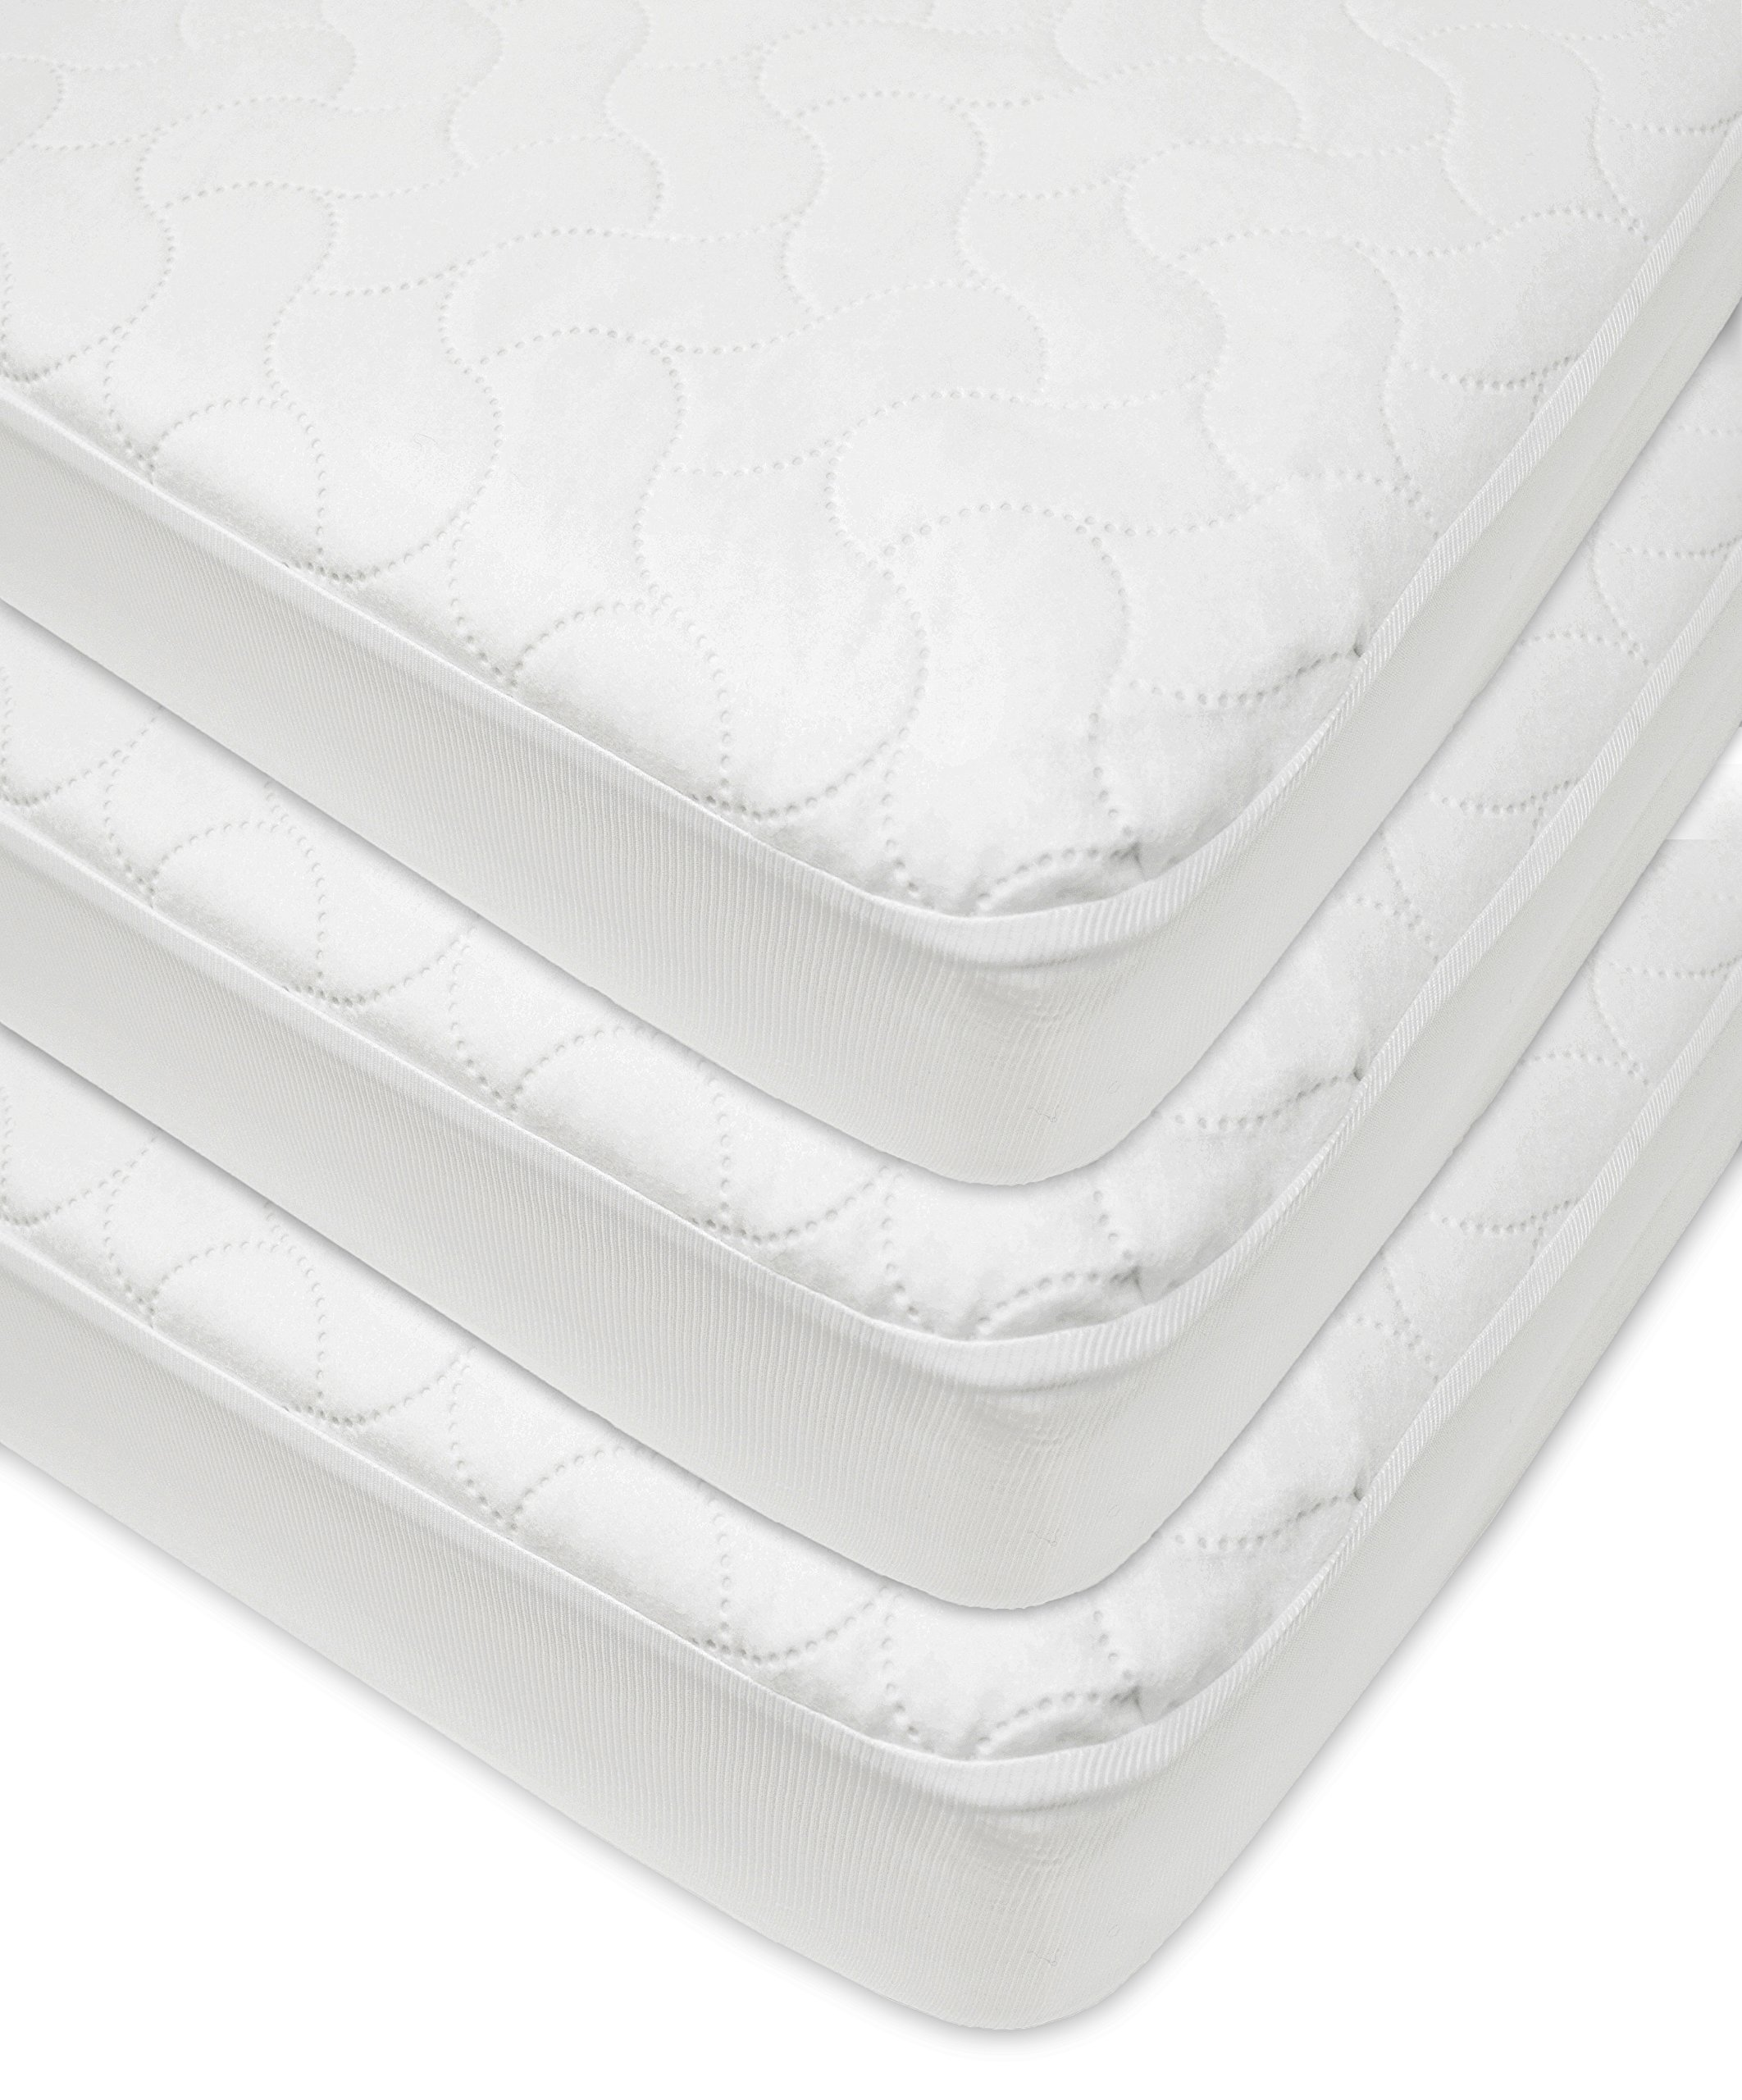 American Baby Company Waterproof Fitted Quilted Crib and Toddler Protective Pad Cover, White, 3 Pack, for Boys and Girls by American Baby Company